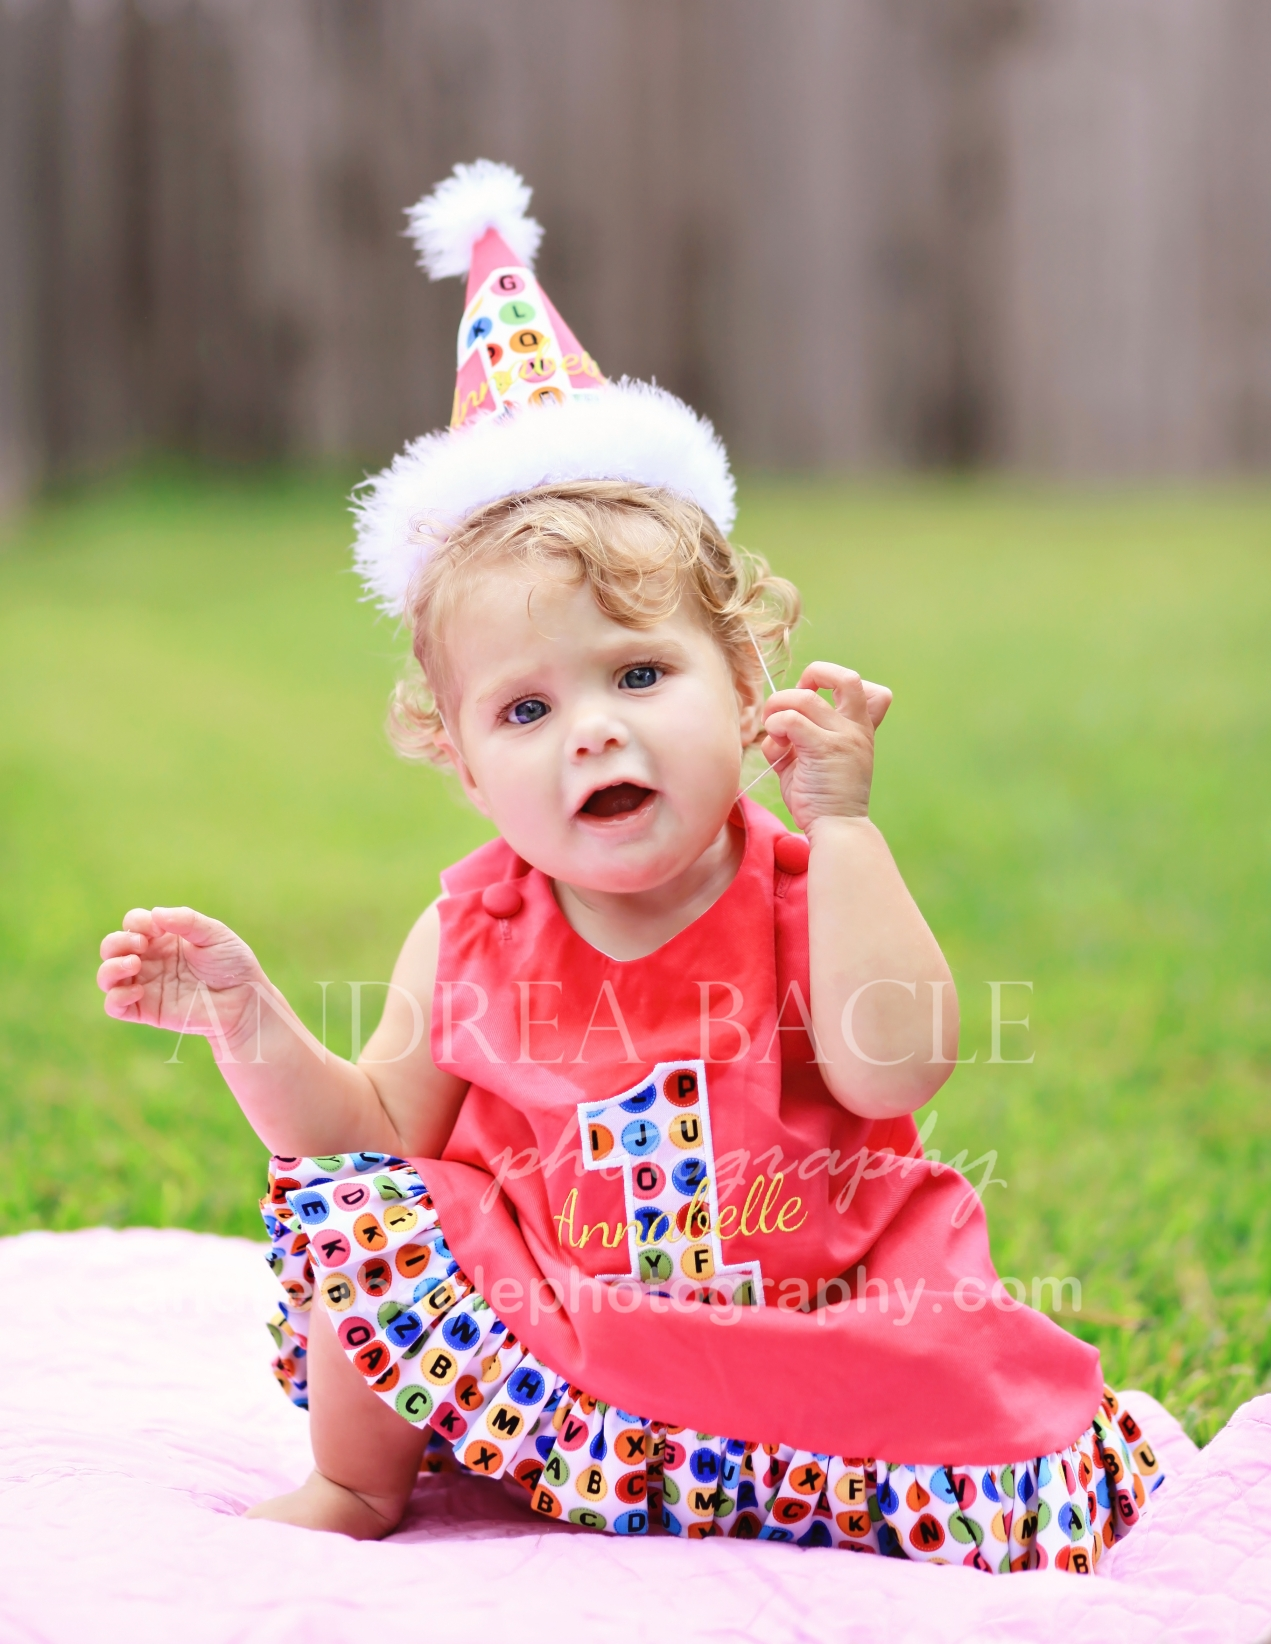 sweet baby girl is one year old The Woodlands TX lifestyle